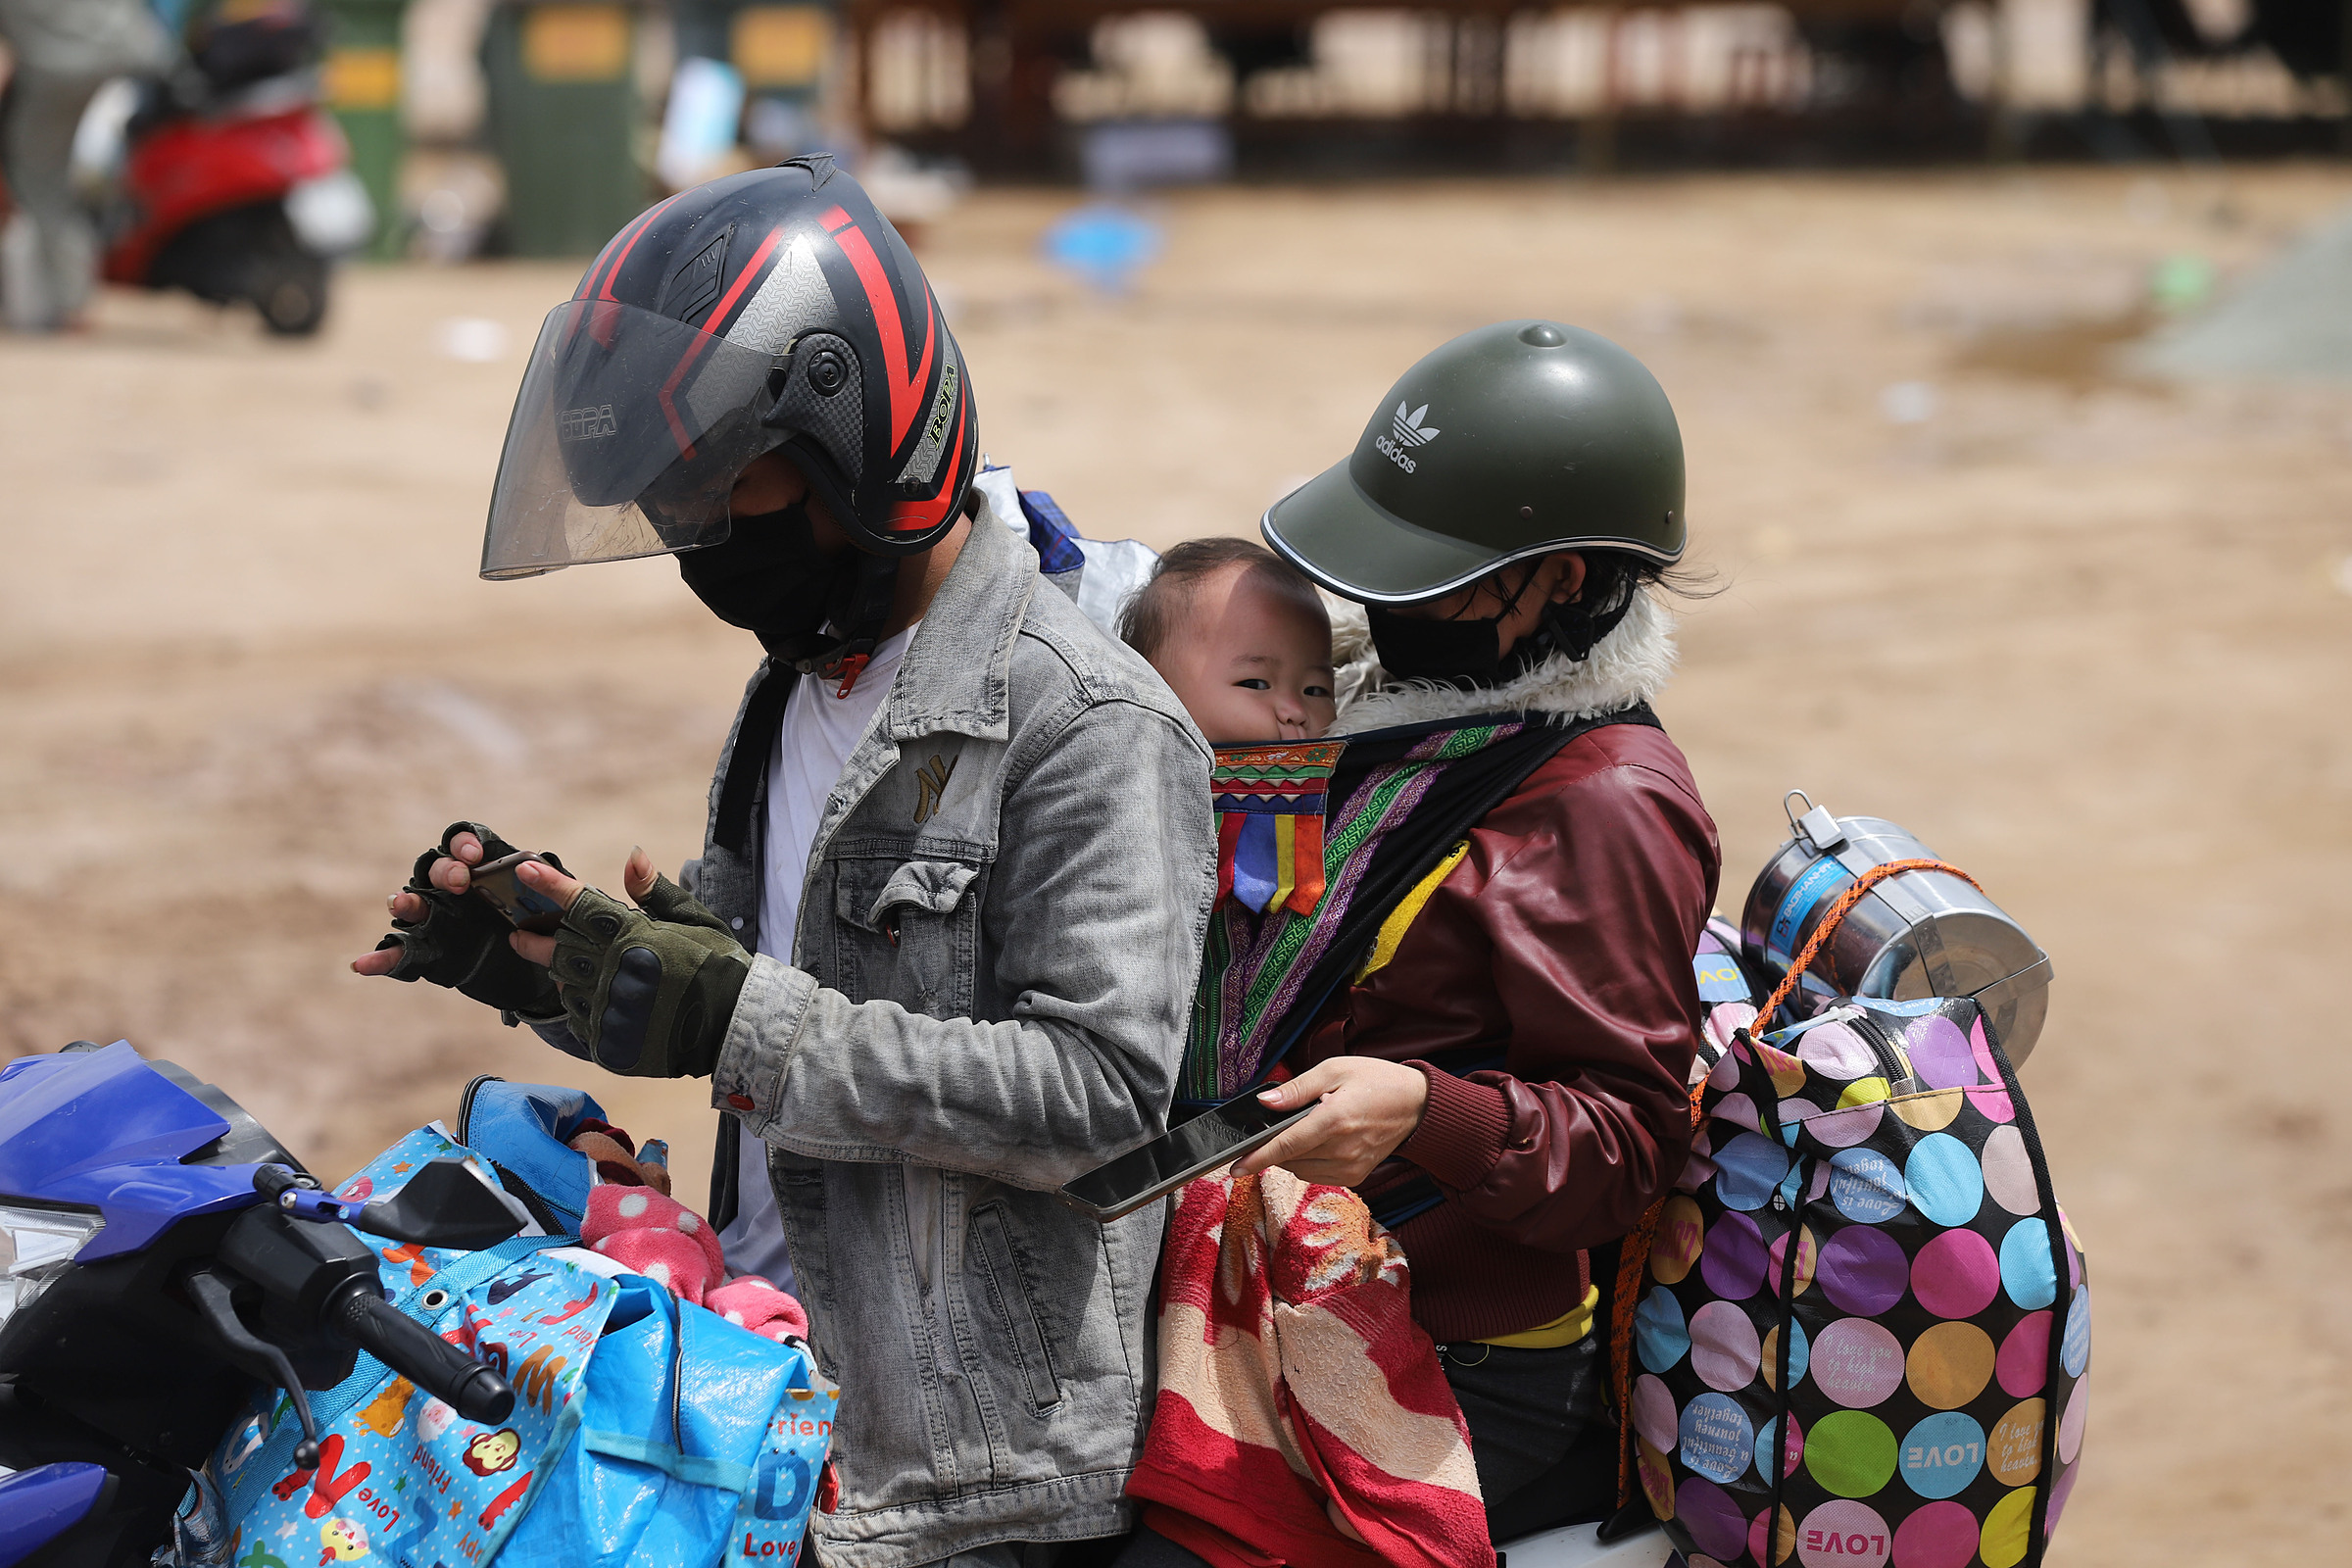 A family returns home in northern Vietnam from the south by motorbike, October 10, 2021. Photo by VnExpress/Vo Thanh